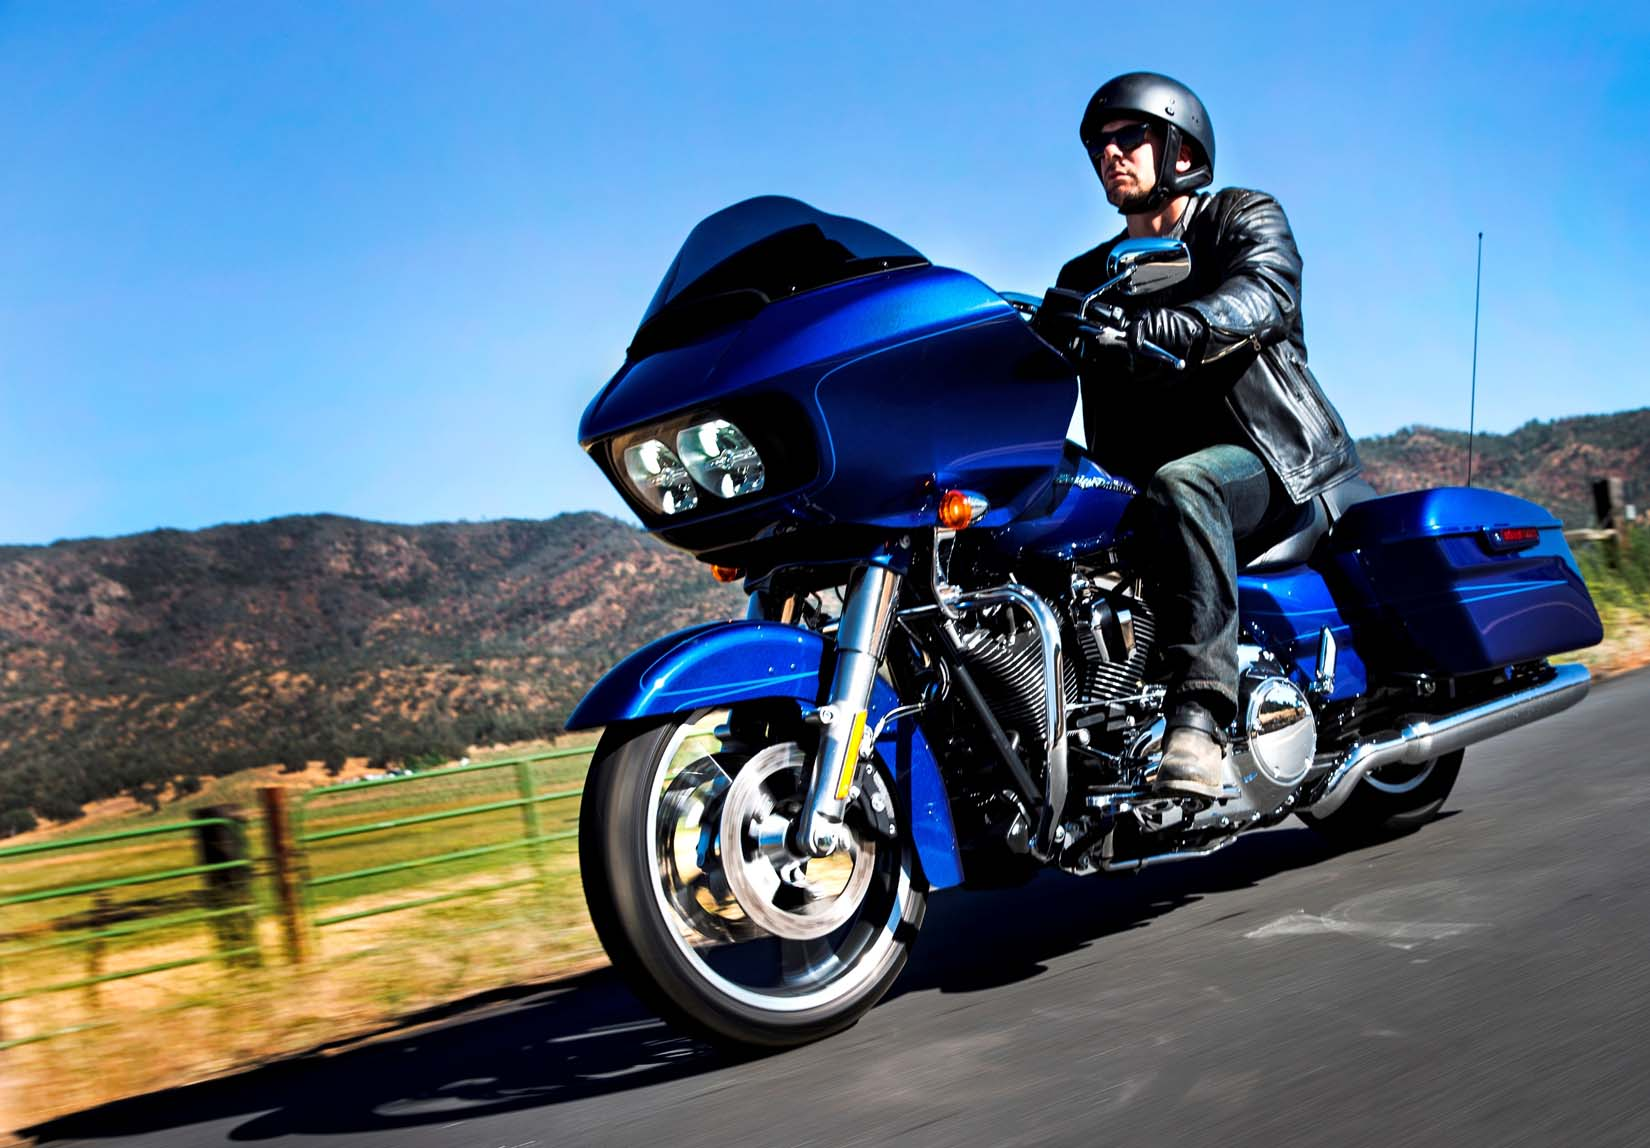 First Look: 2015 Harley-Davidson Road Glide and Road Glide Special